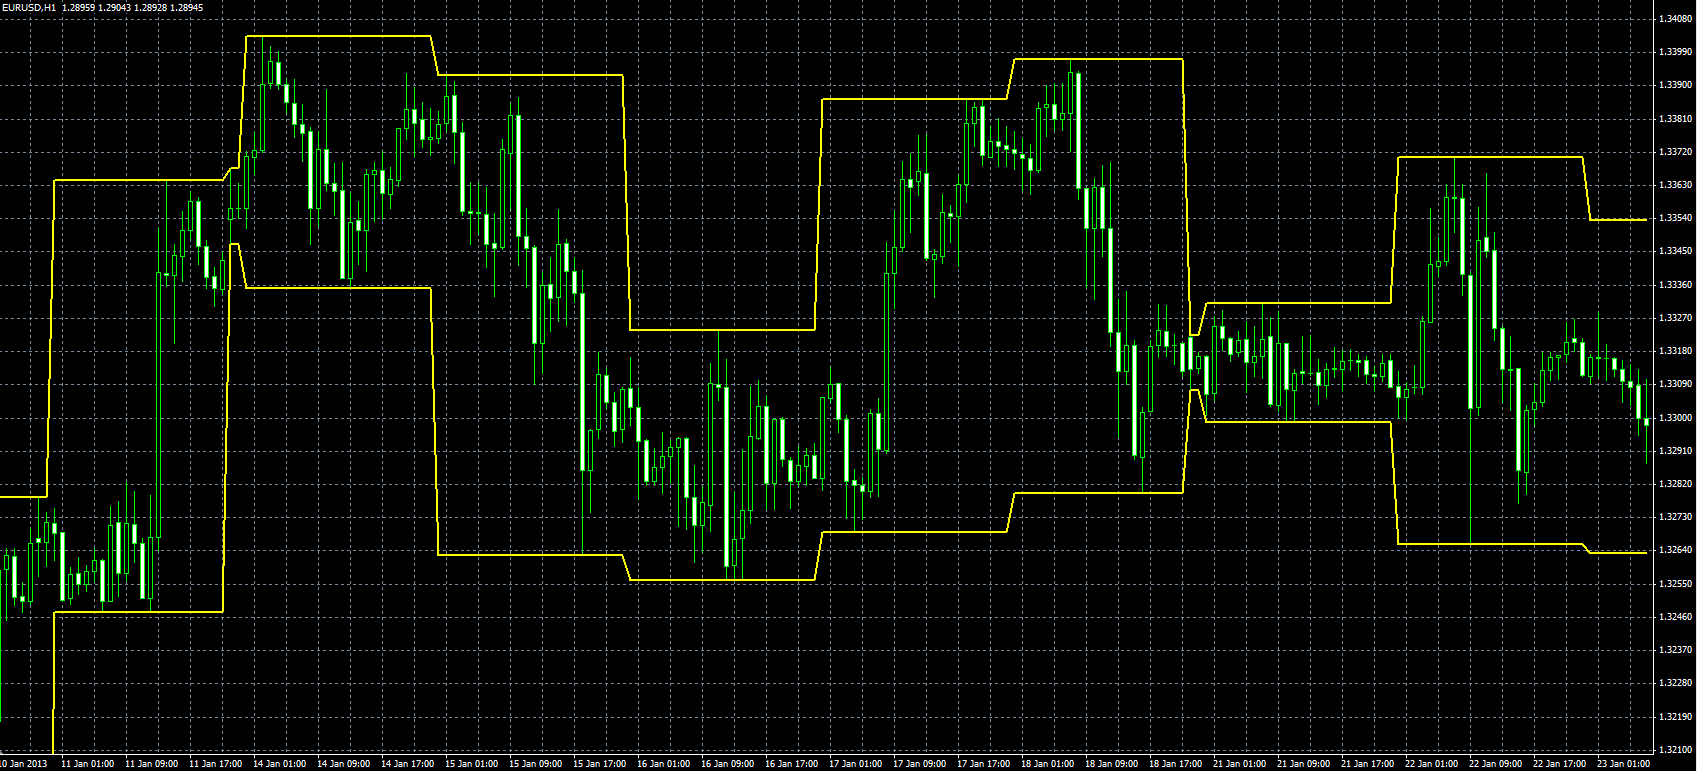 Daily high low forex strategy